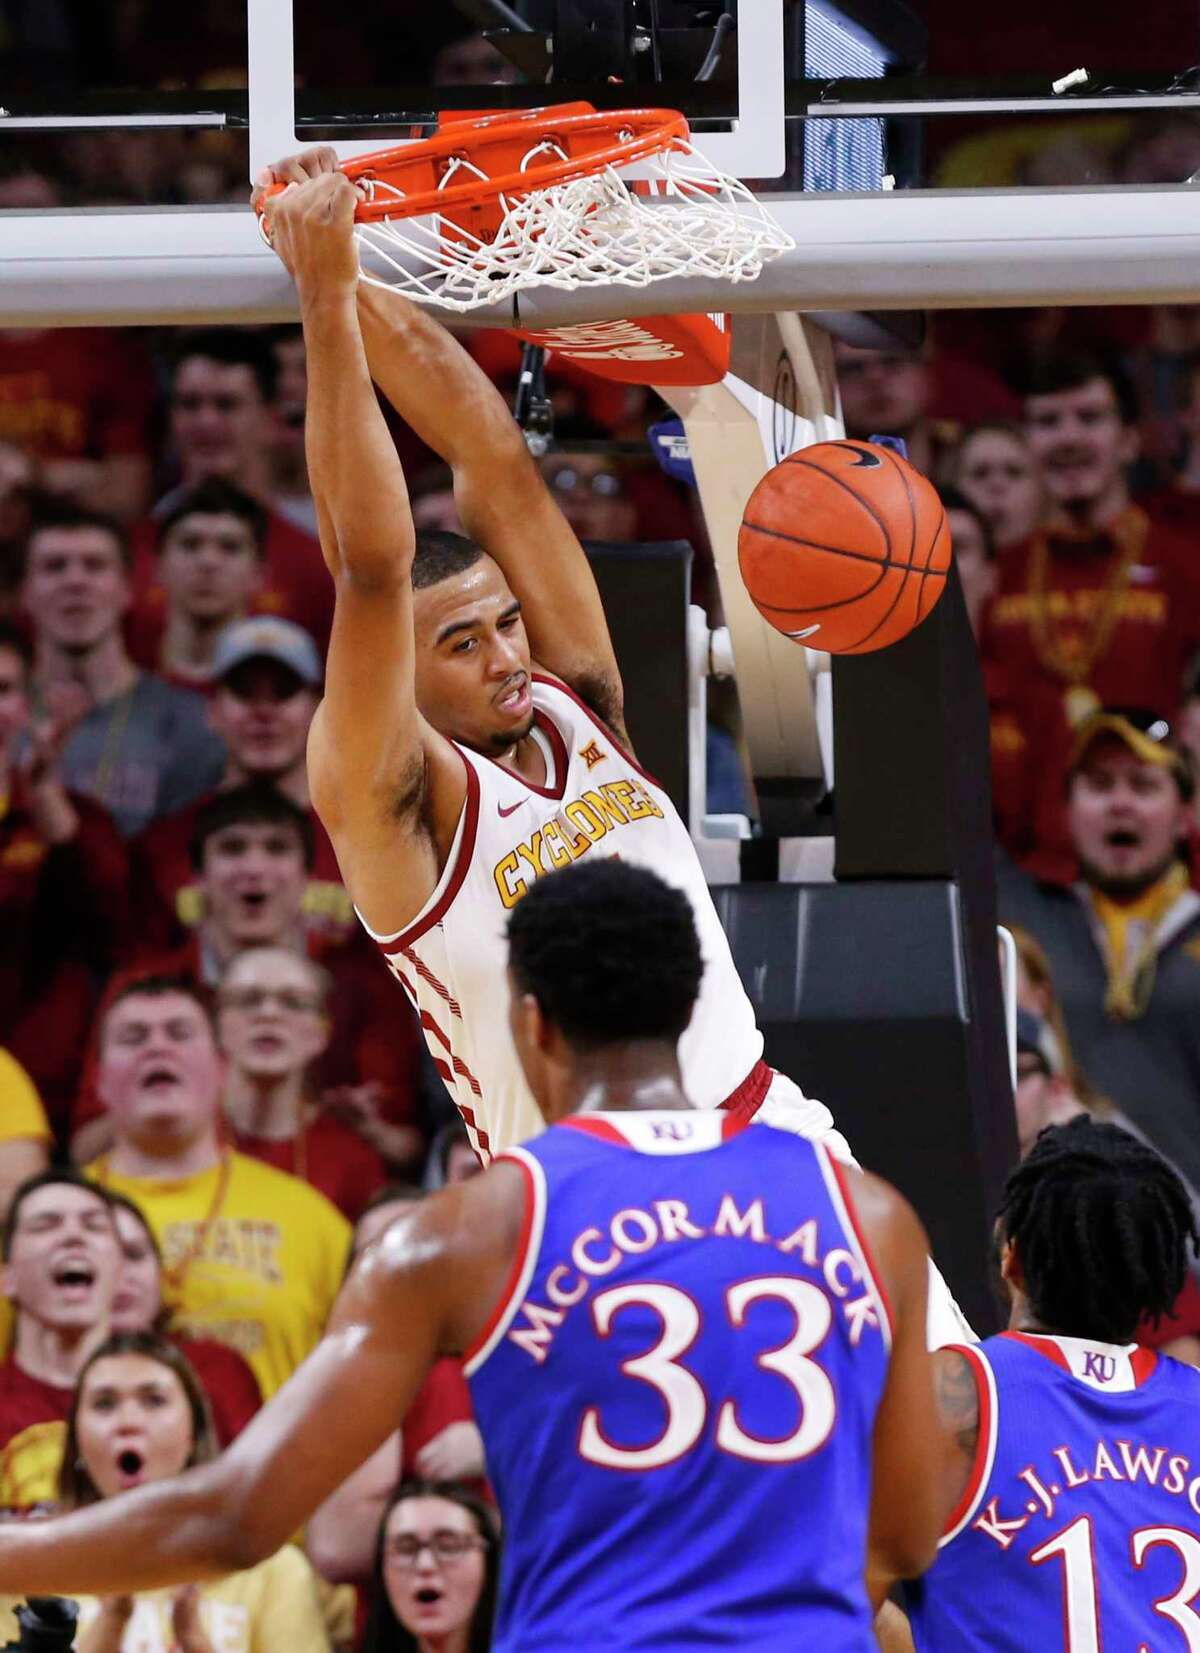 AMES, IA - JANUARY 5: Talen Horton-Tucker #11 of the Iowa State Cyclones dunks the ball as David McCormack #33 of the Kansas Jayhawks, and K.J. Lawson #13 of the Kansas Jayhawks defend in the second half of play at Hilton Coliseum on January 5, 2019 in Ames, Iowa. The Iowa State Cyclones won 77-60 over the Kansas Jayhawks. (Photo by David Purdy/Getty Images)